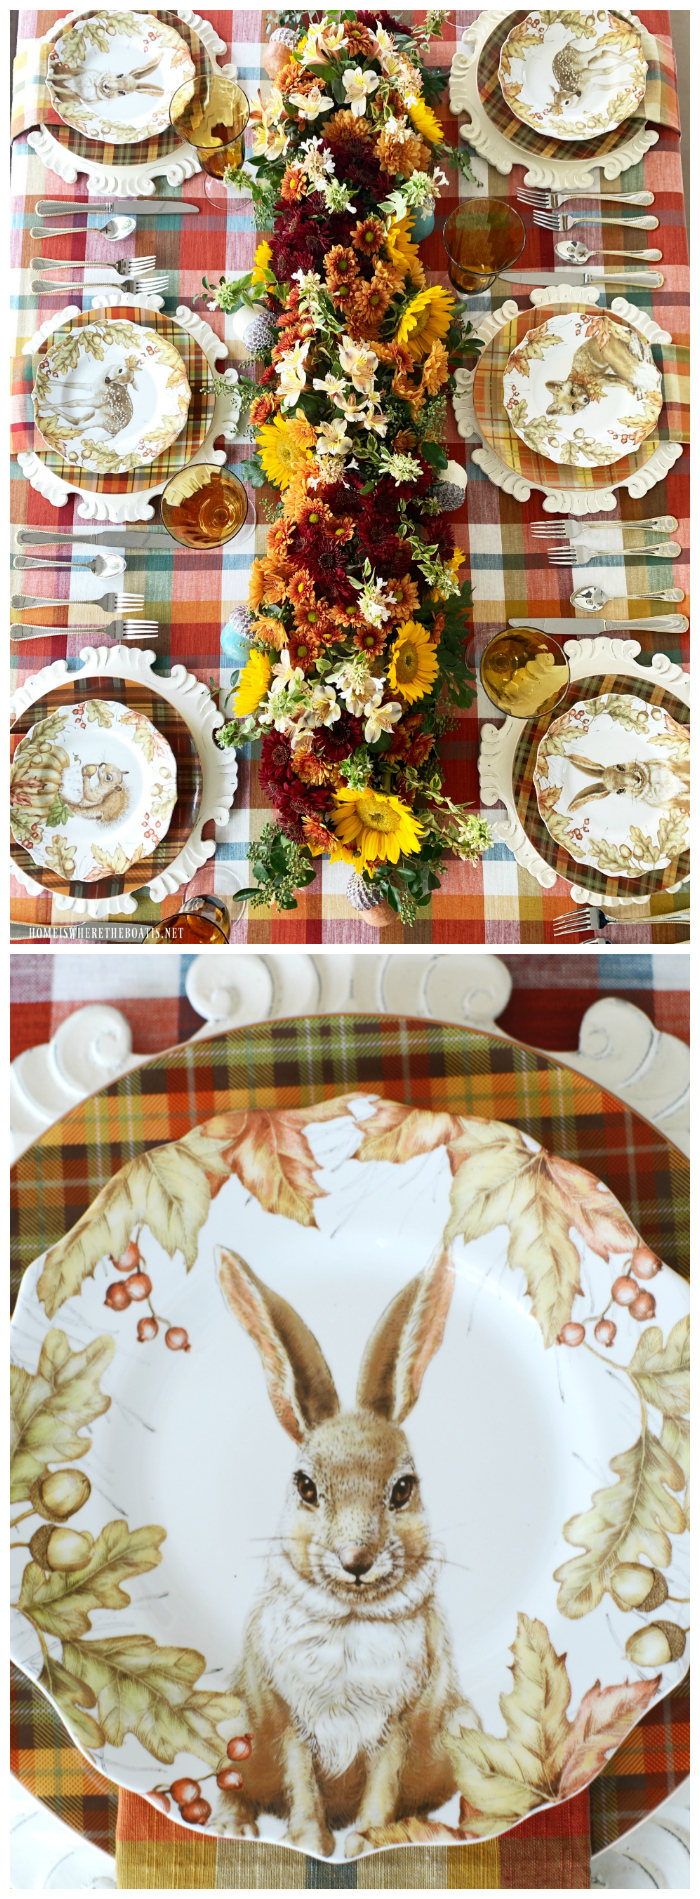 Woodland Friends Fall Table + DIY FloralRunner | ©homeiswheretheboatis.net #fall #tablescapes